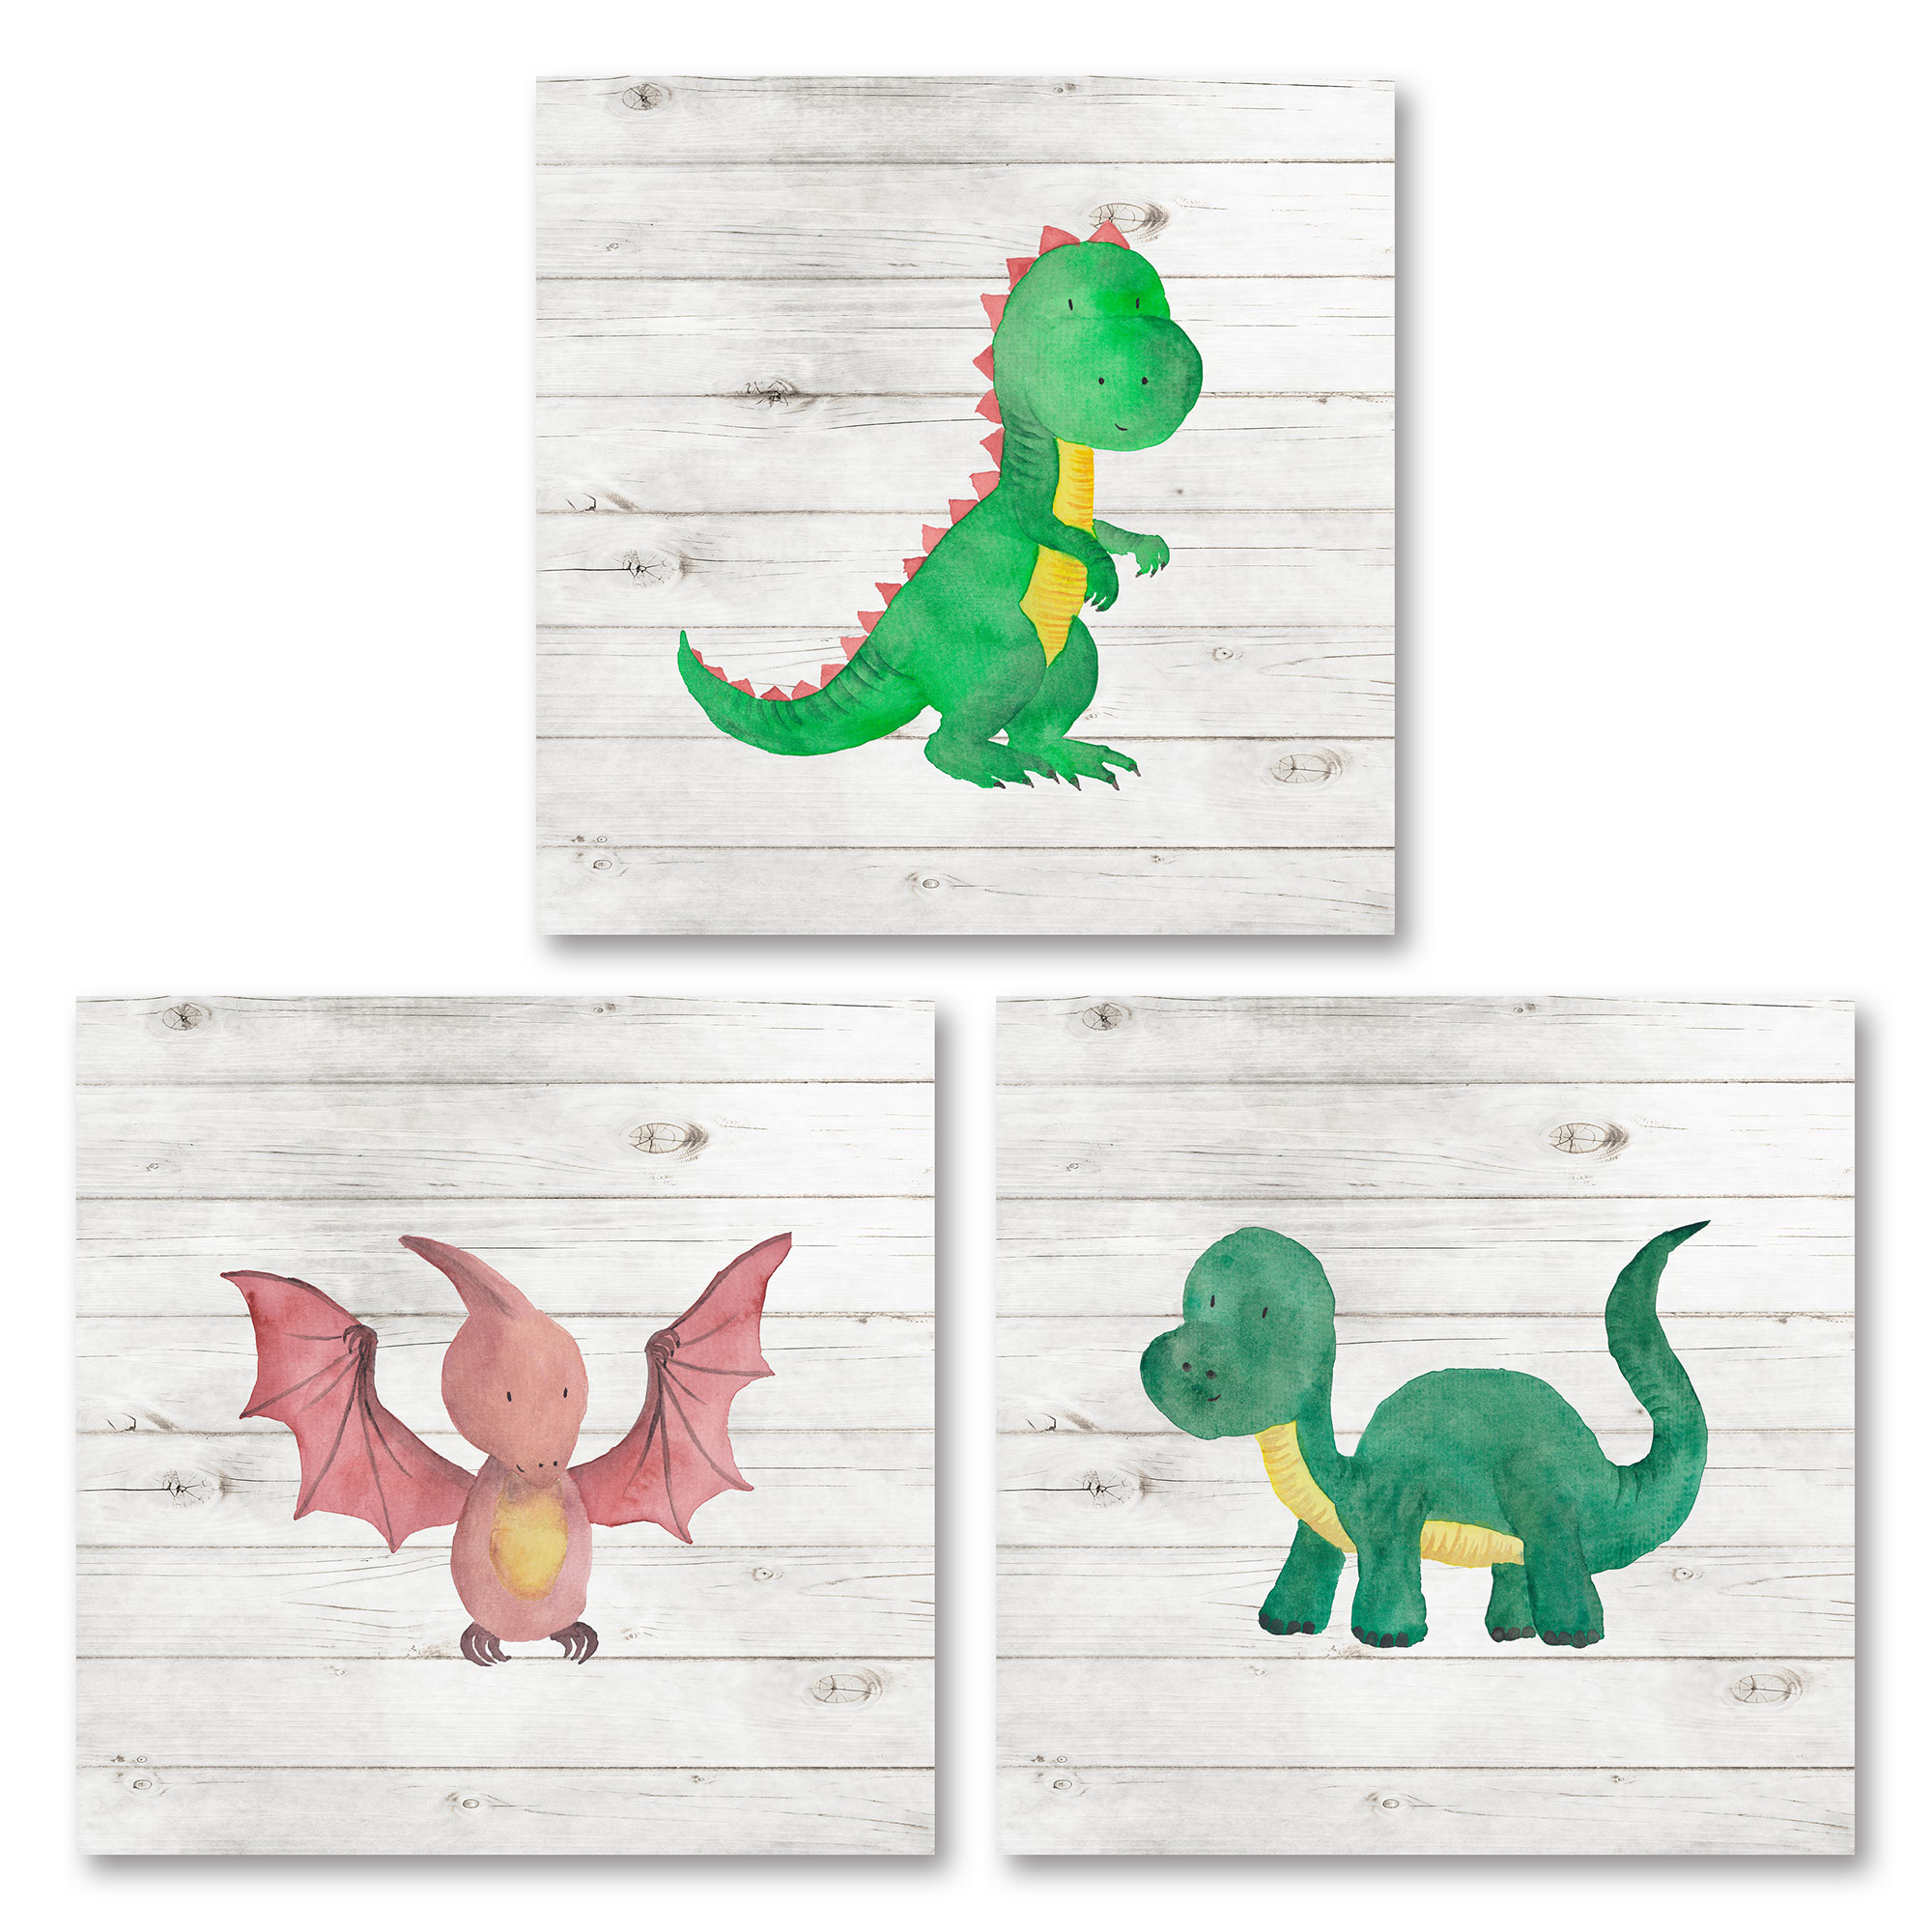 Adorable Baby Dinosaur Set (Printed On Paper), Perfect for a Child's Room or Nursery; Three 8x8in Unframed Paper Posters